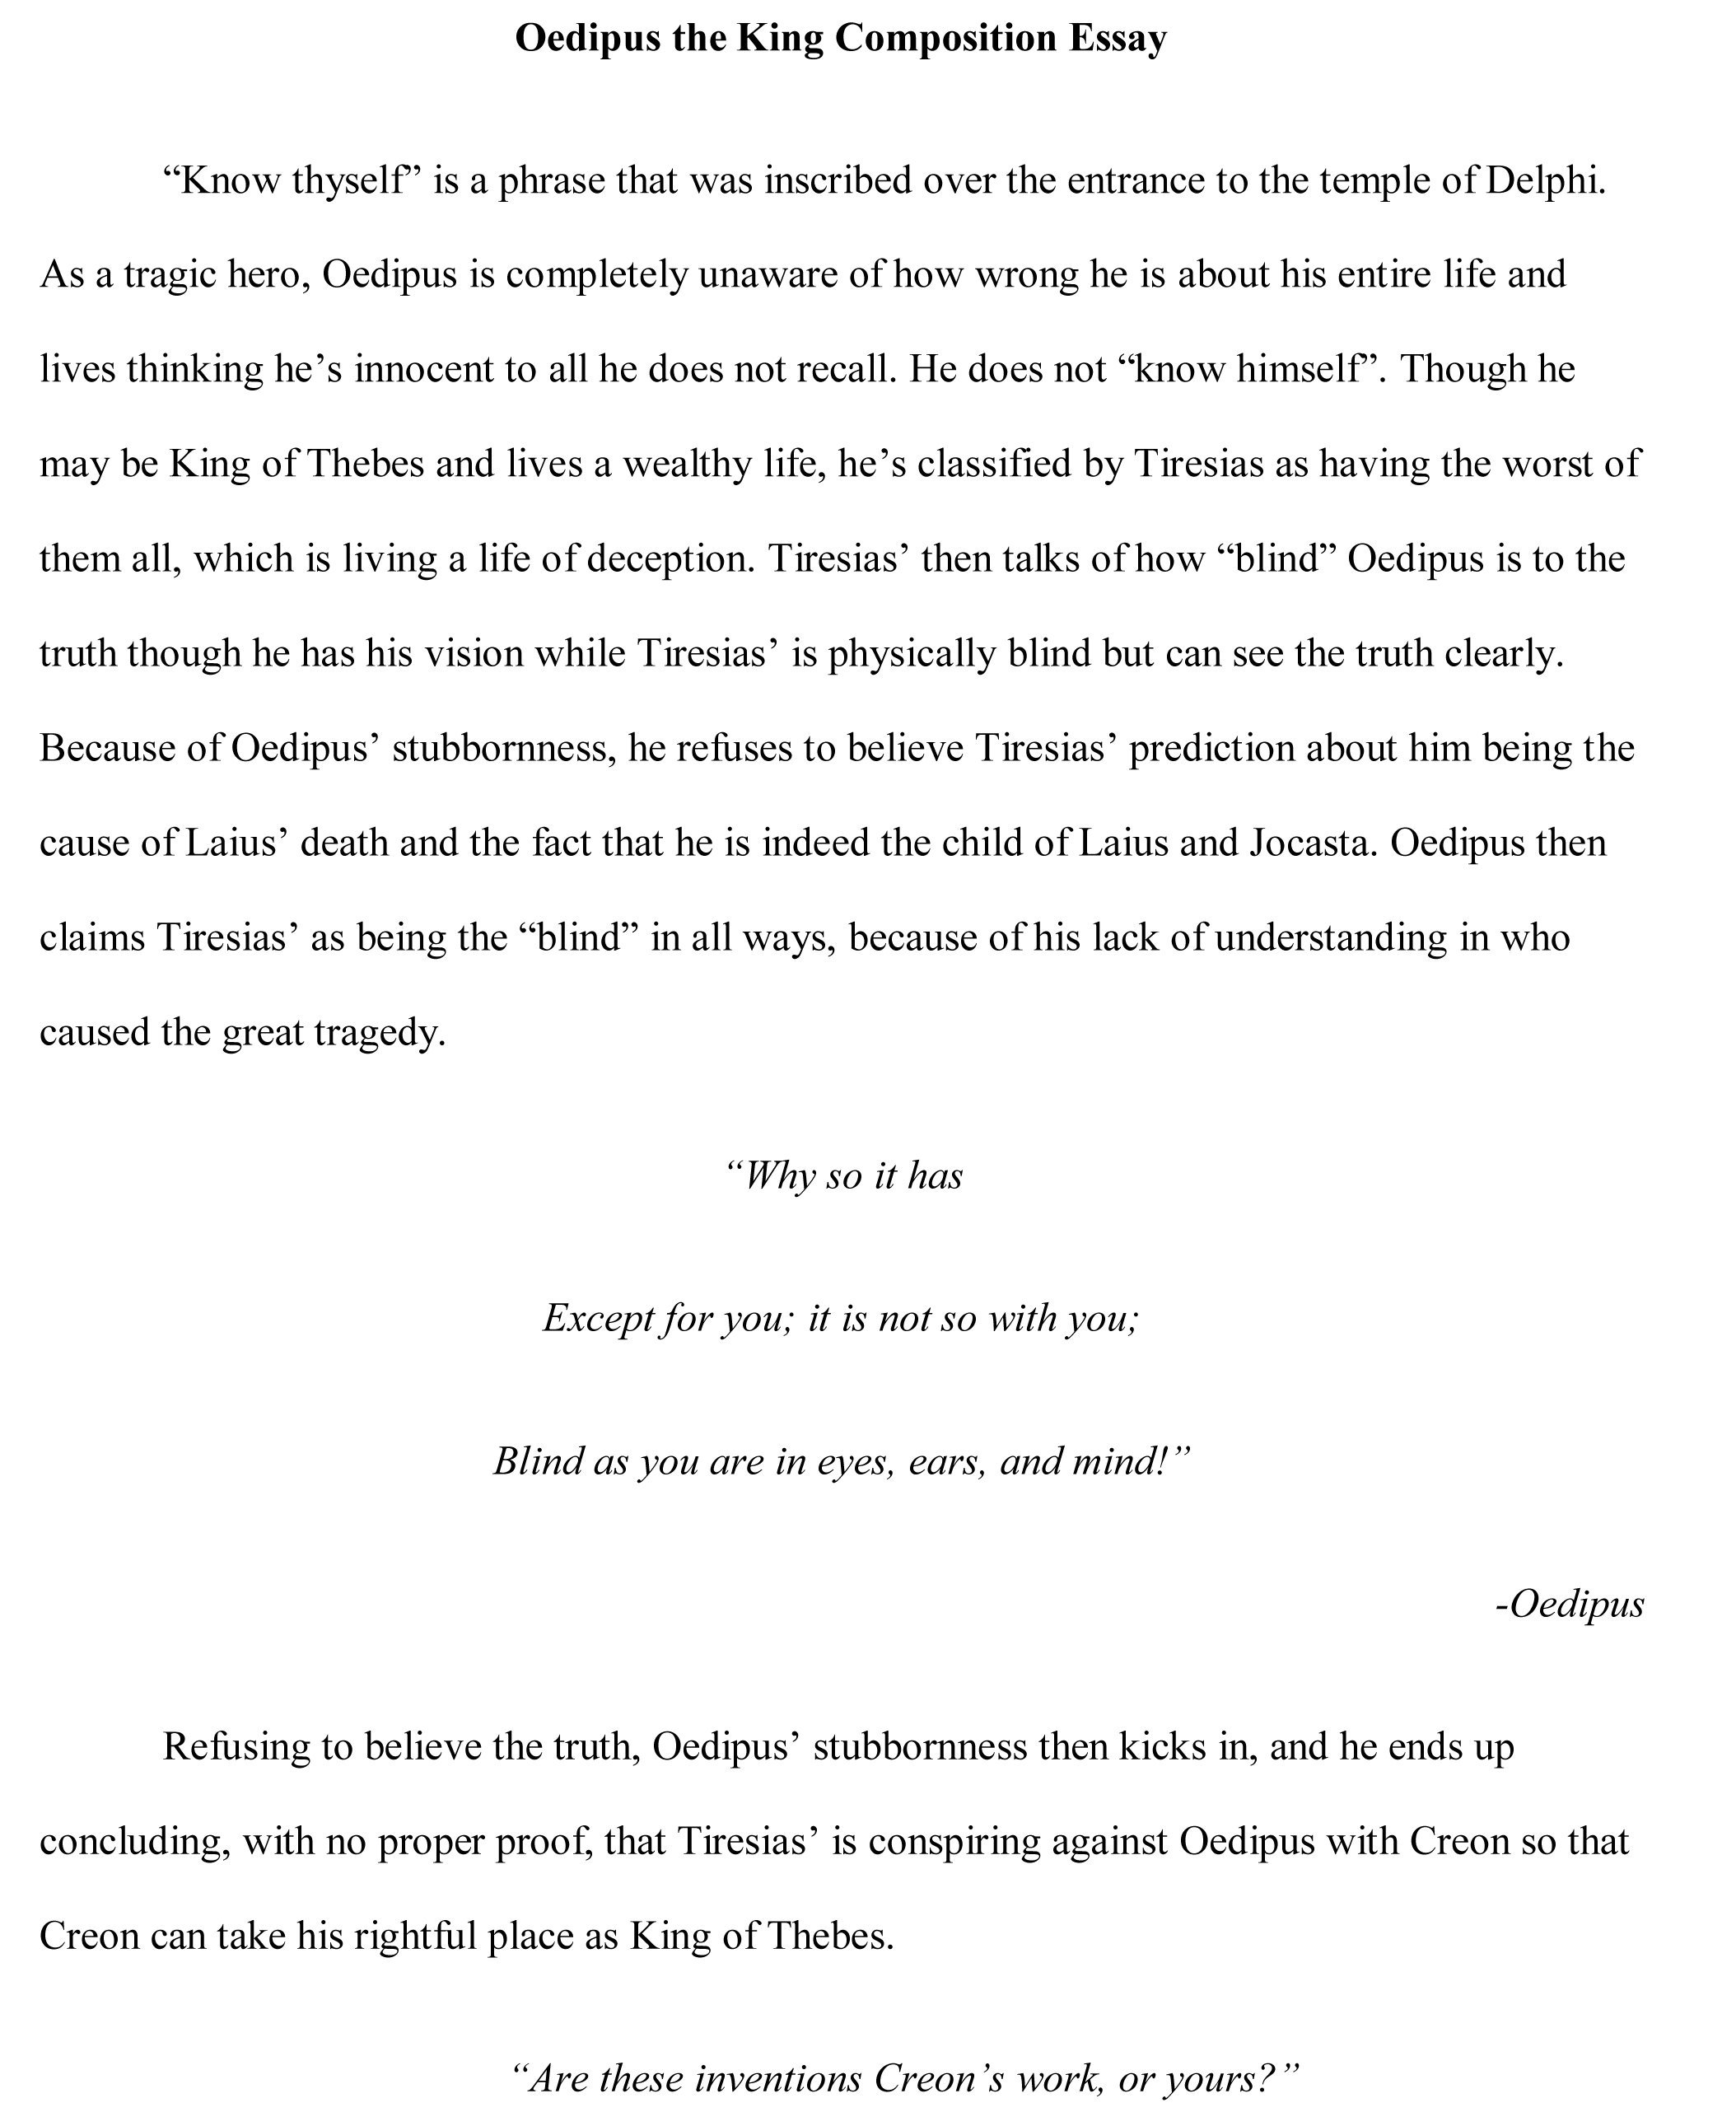 005 Automatic Essay Writer Example Oedipus Free Incredible Full